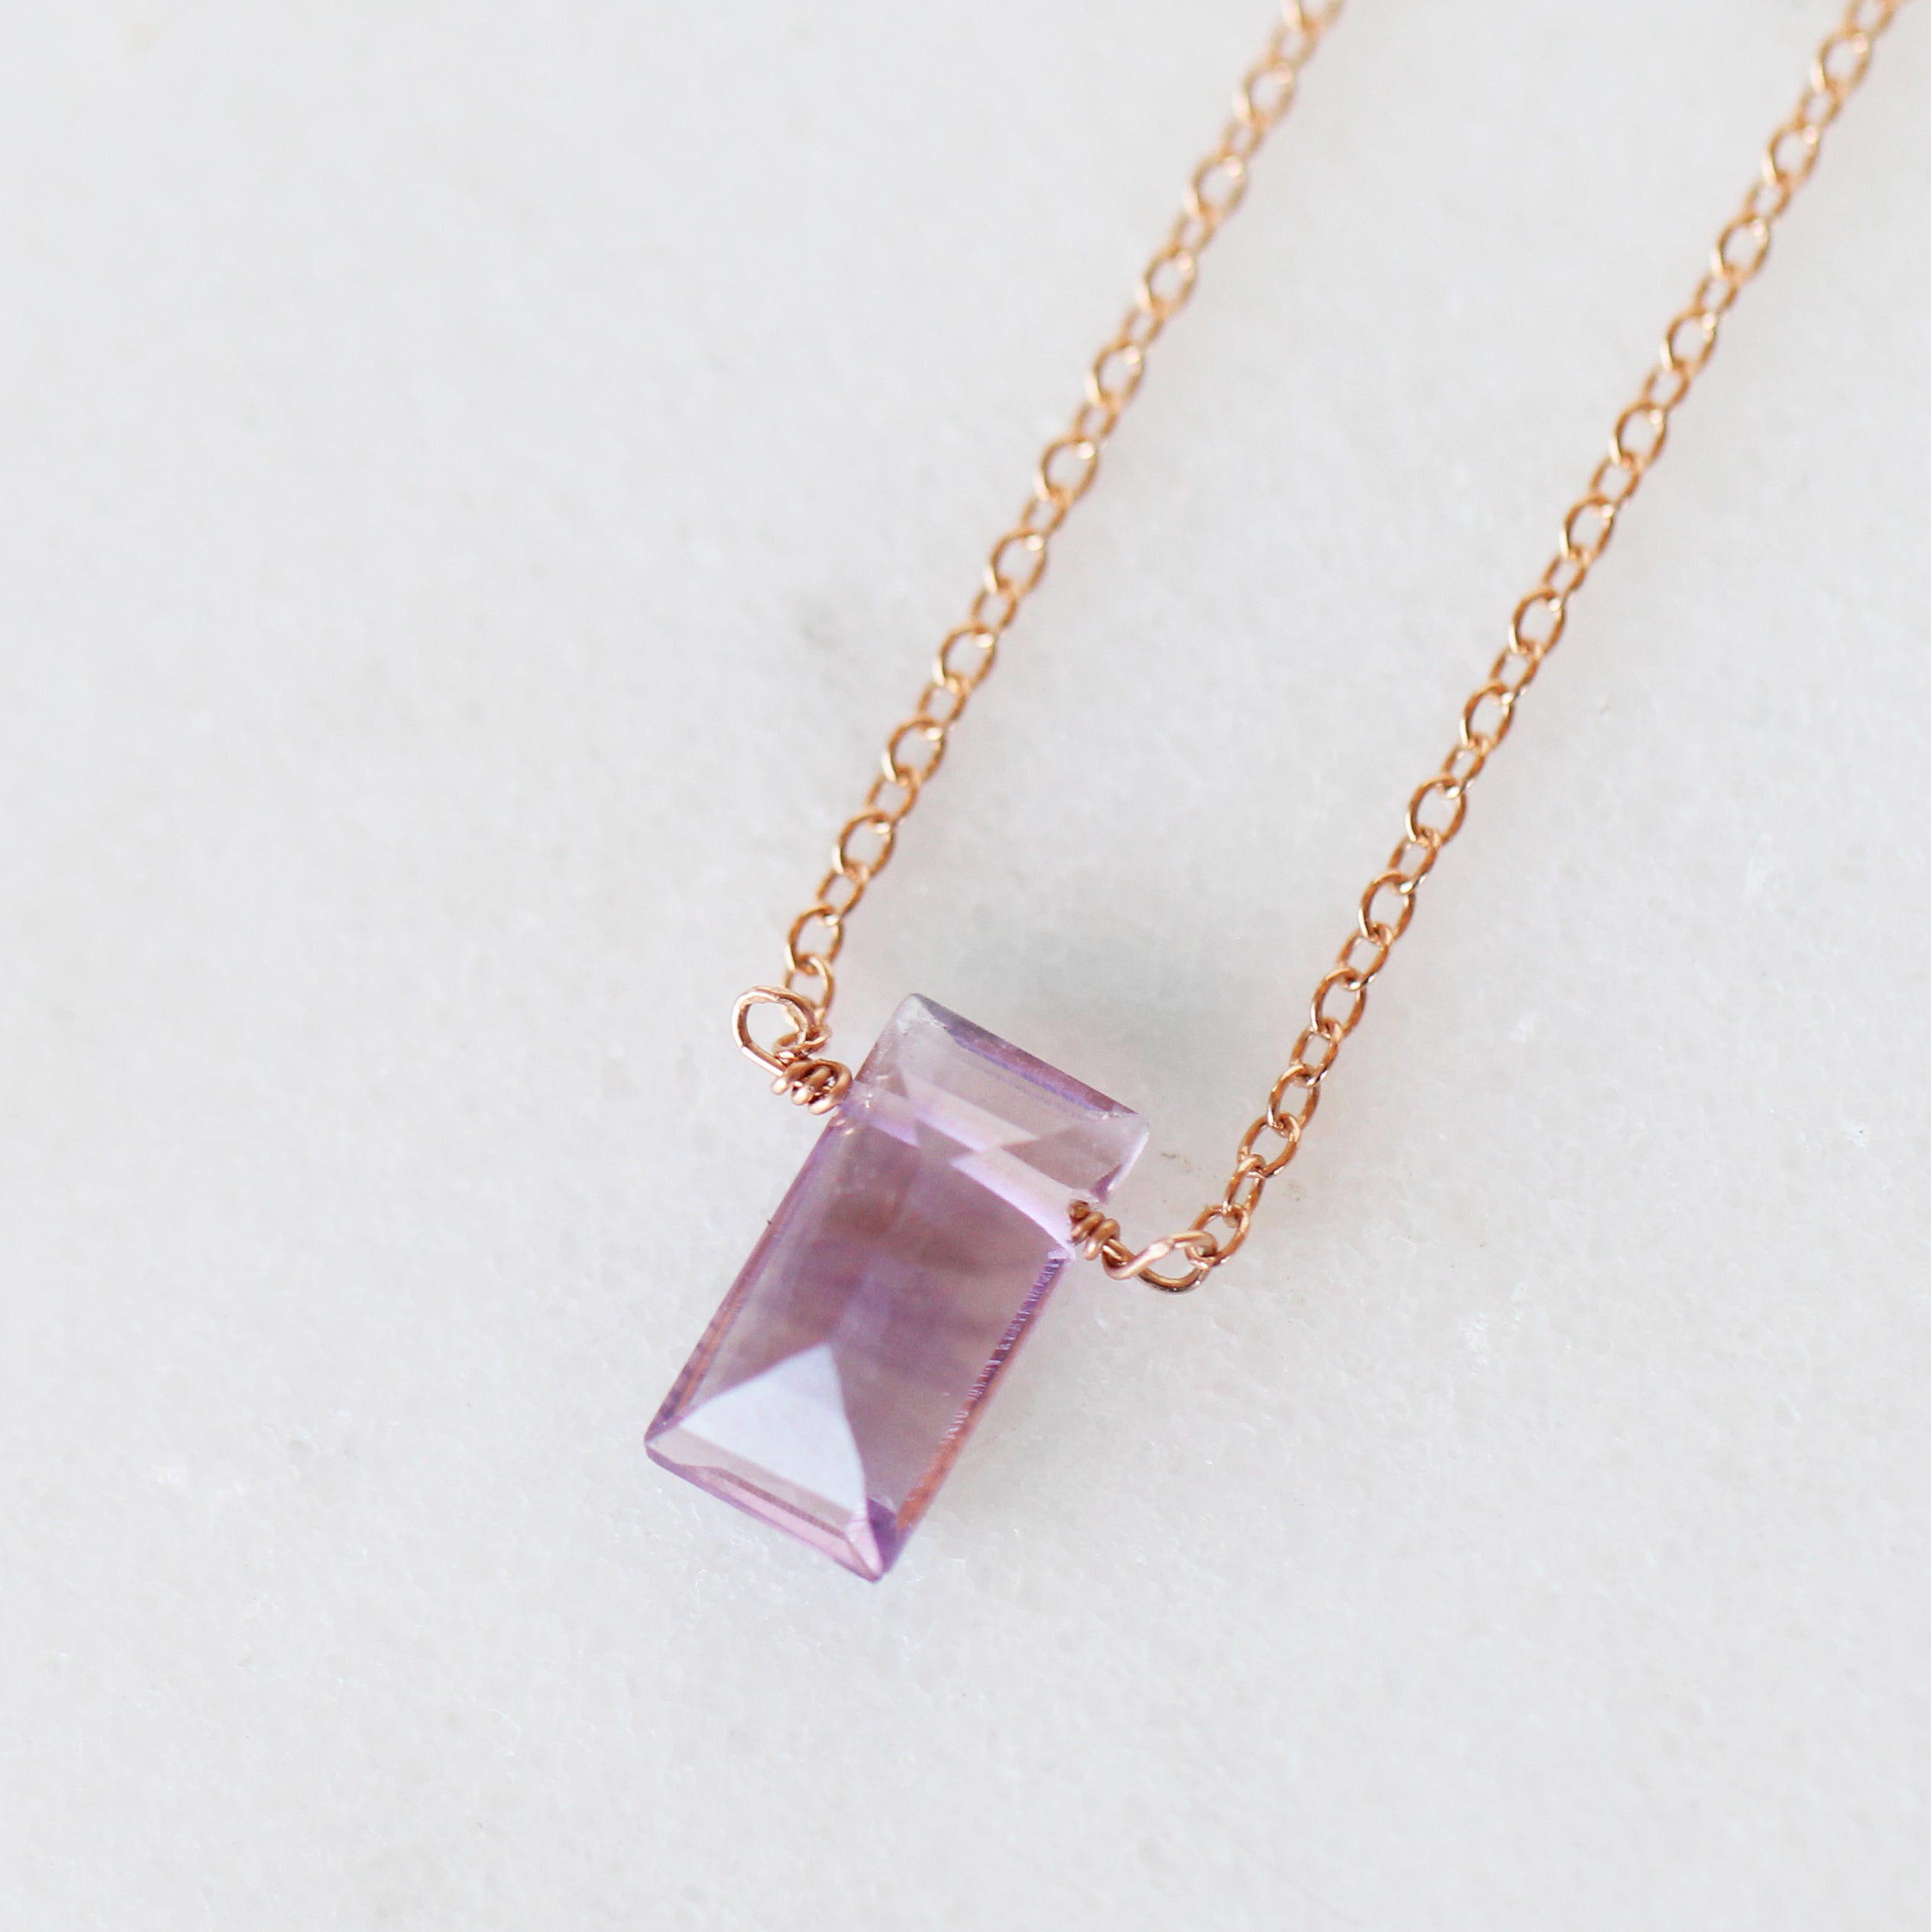 Amethyst Emerald Cut Pendant Necklaces with 14k Rose Gold Fill Chain - Celestial Diamonds ® by Midwinter Co.